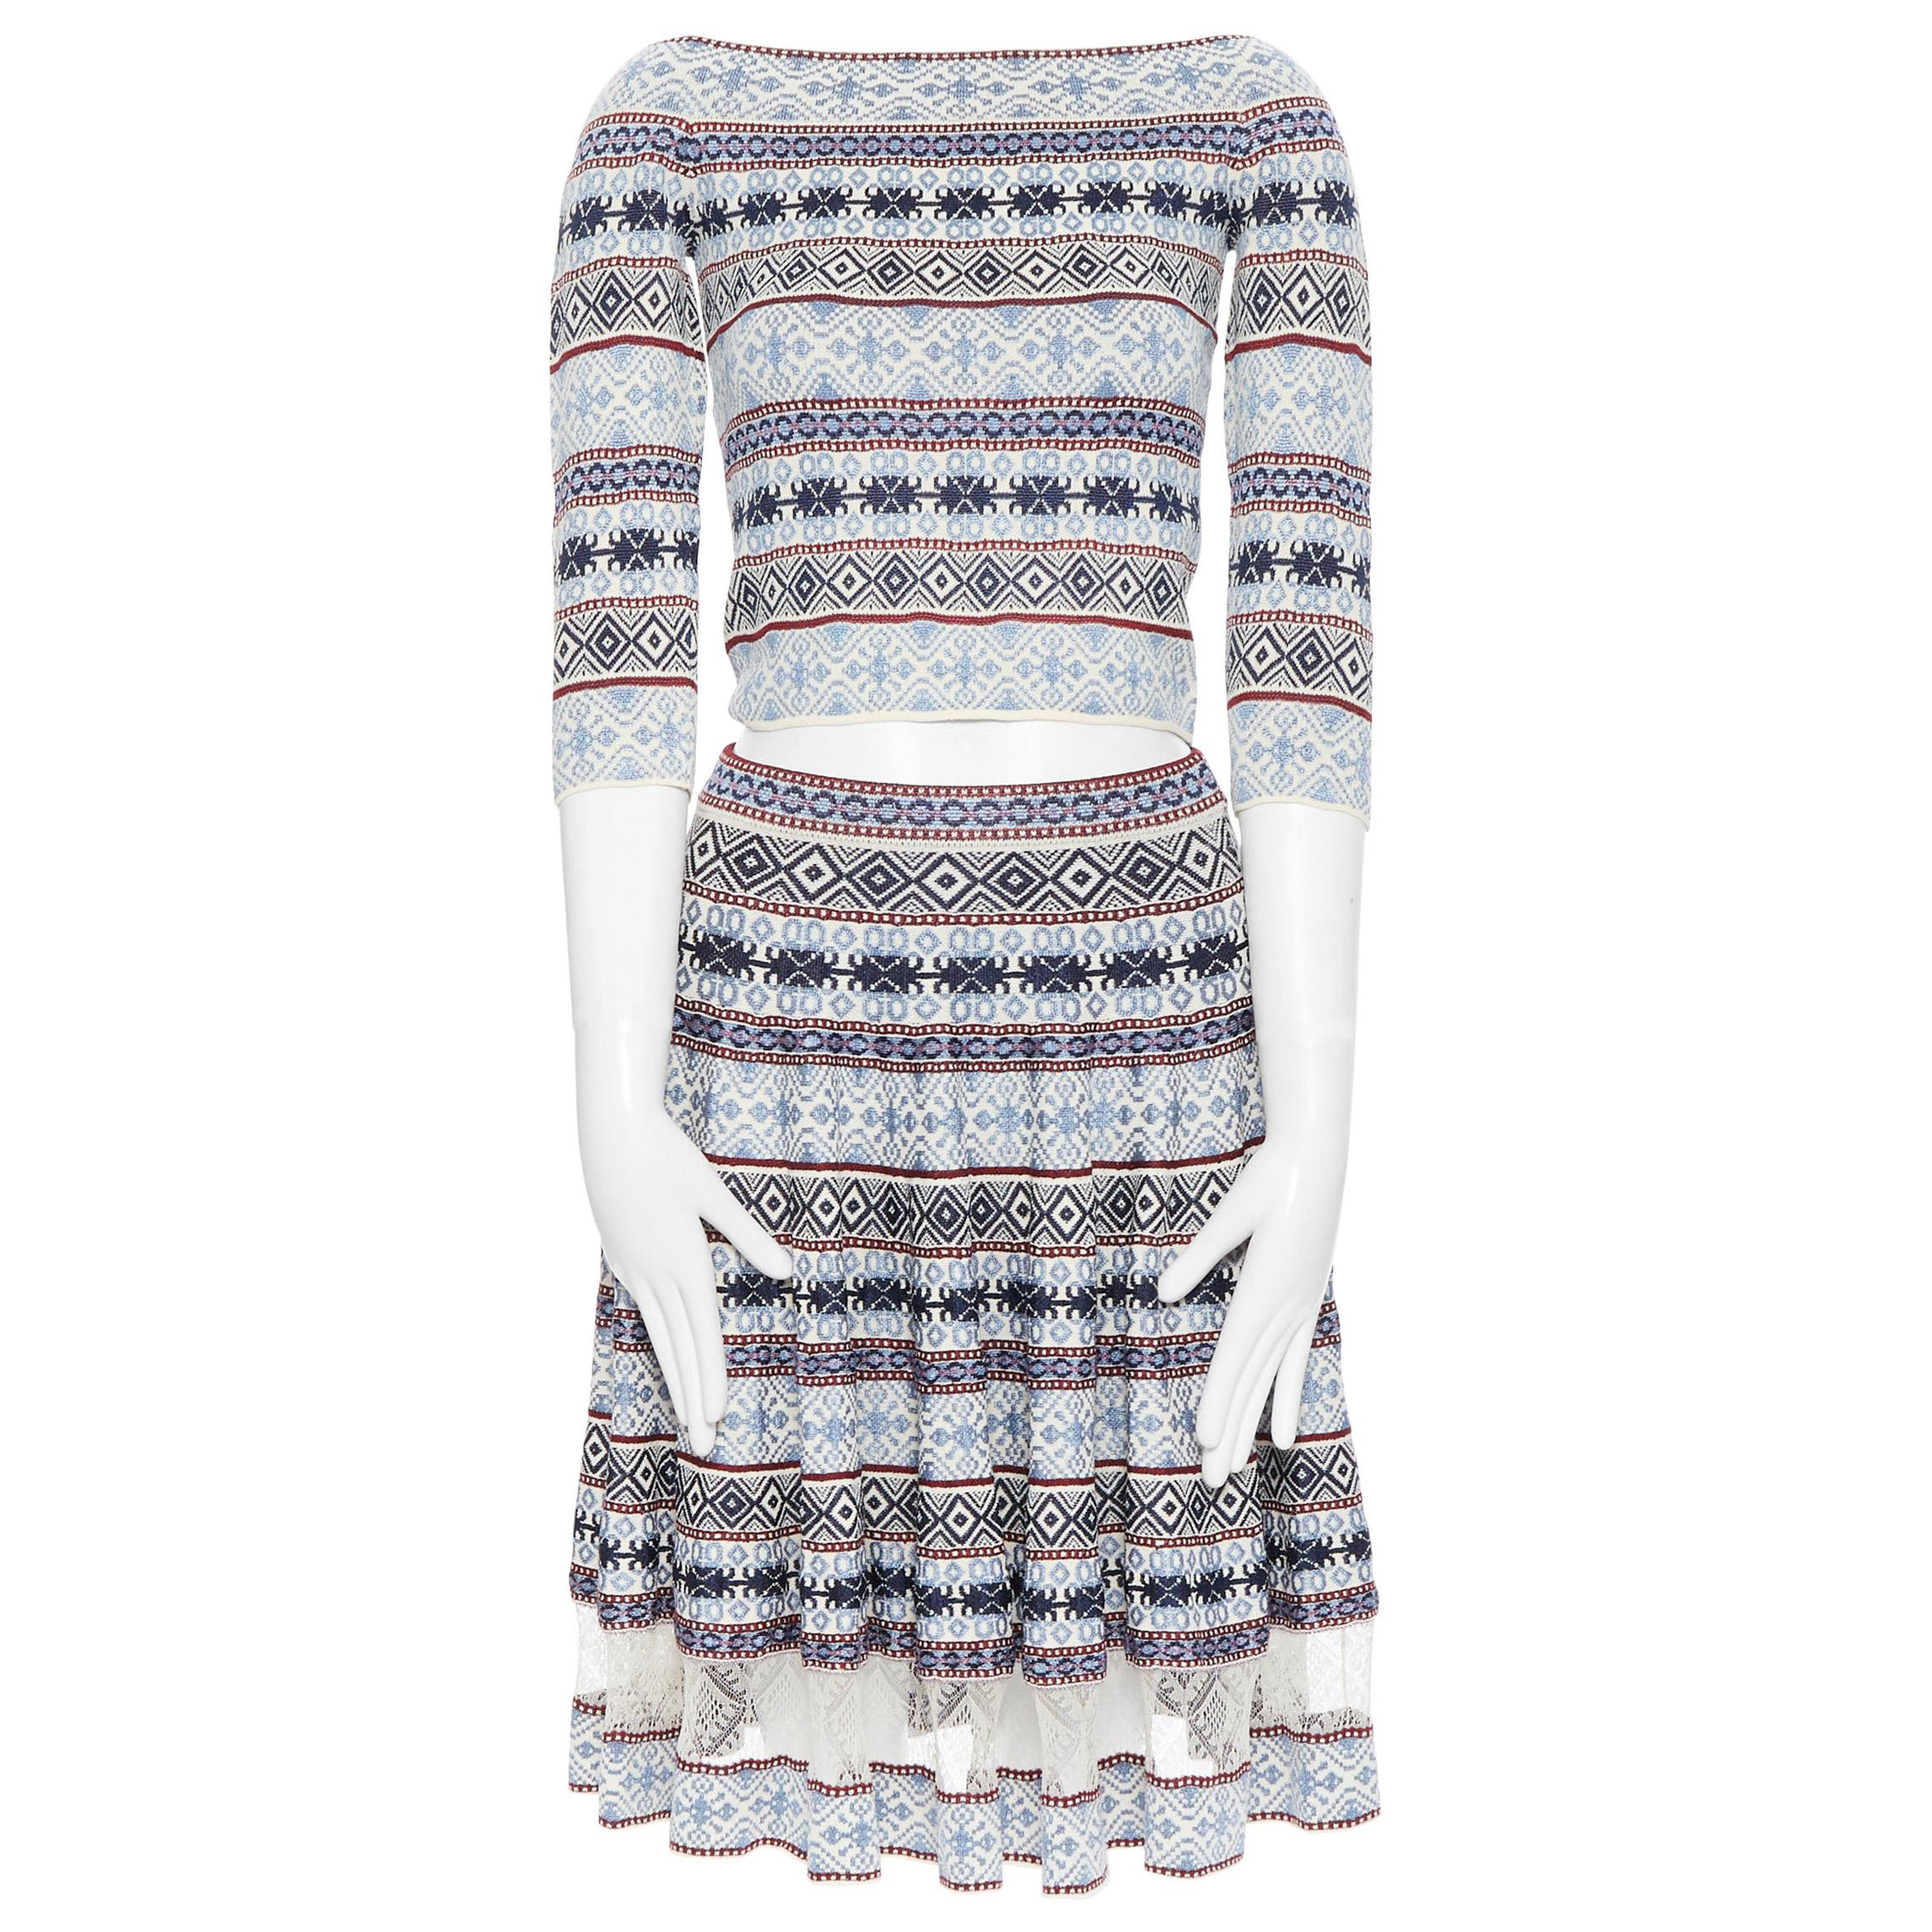 ALEXANDER MCQUEEN blue ethnic intarsia cropped top lace insert skirt dress M